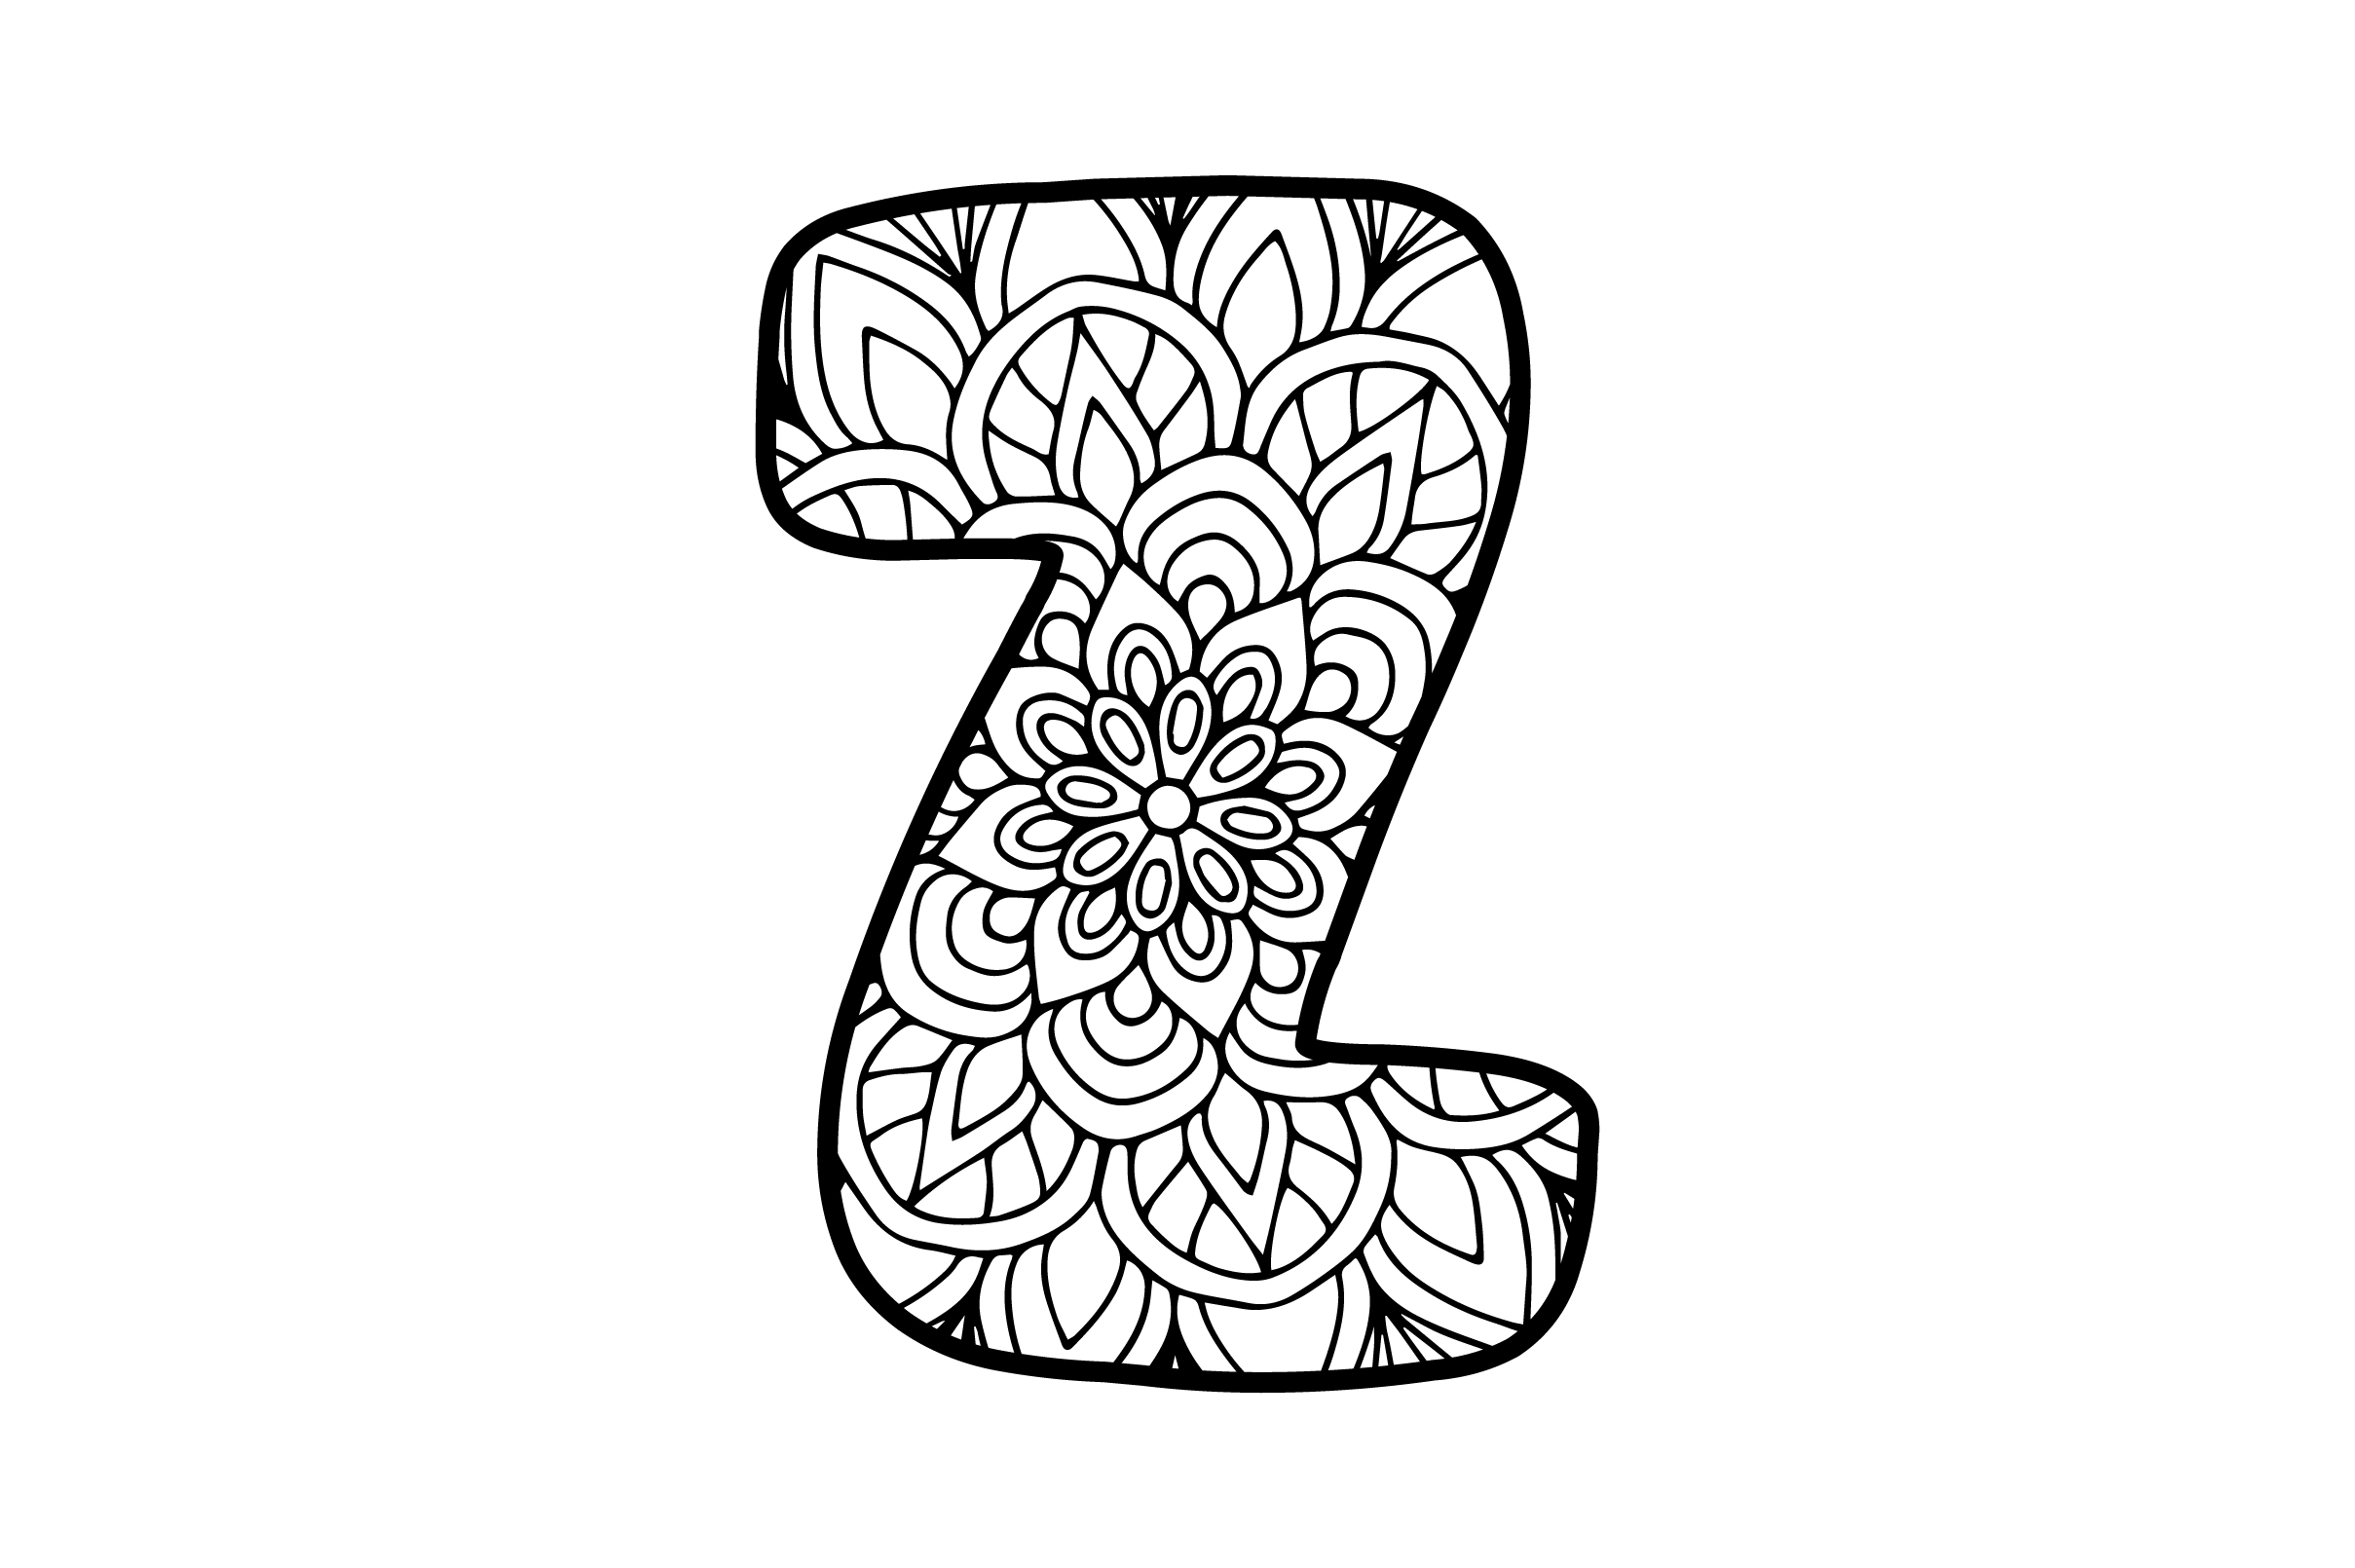 Download Free Mandala Alphabet Z Svg Cut File By Creative Fabrica Crafts for Cricut Explore, Silhouette and other cutting machines.